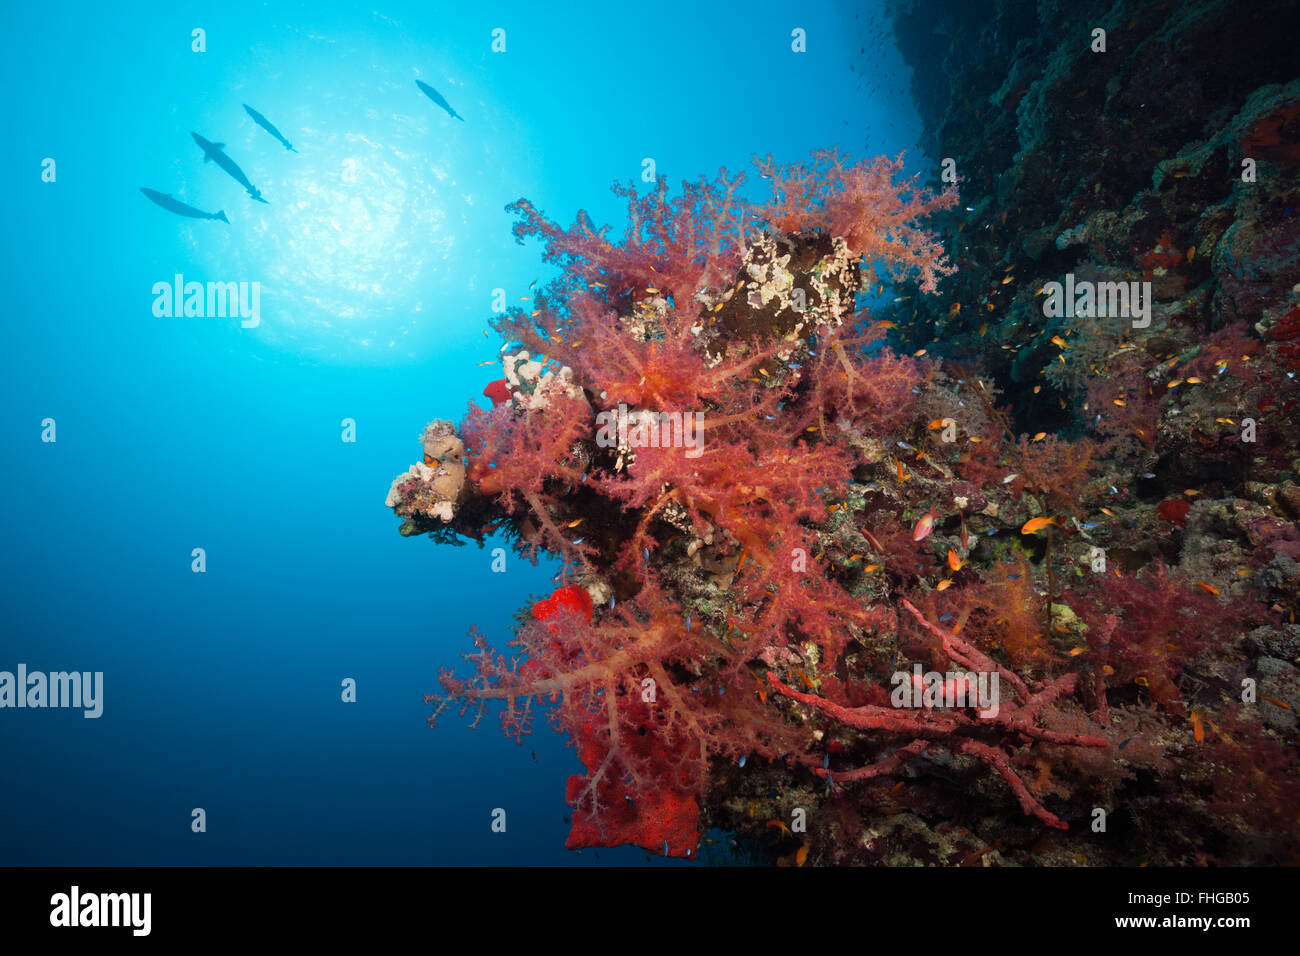 Colored Soft Coral Reef, Red Sea, Dahab, Egypt - Stock Image